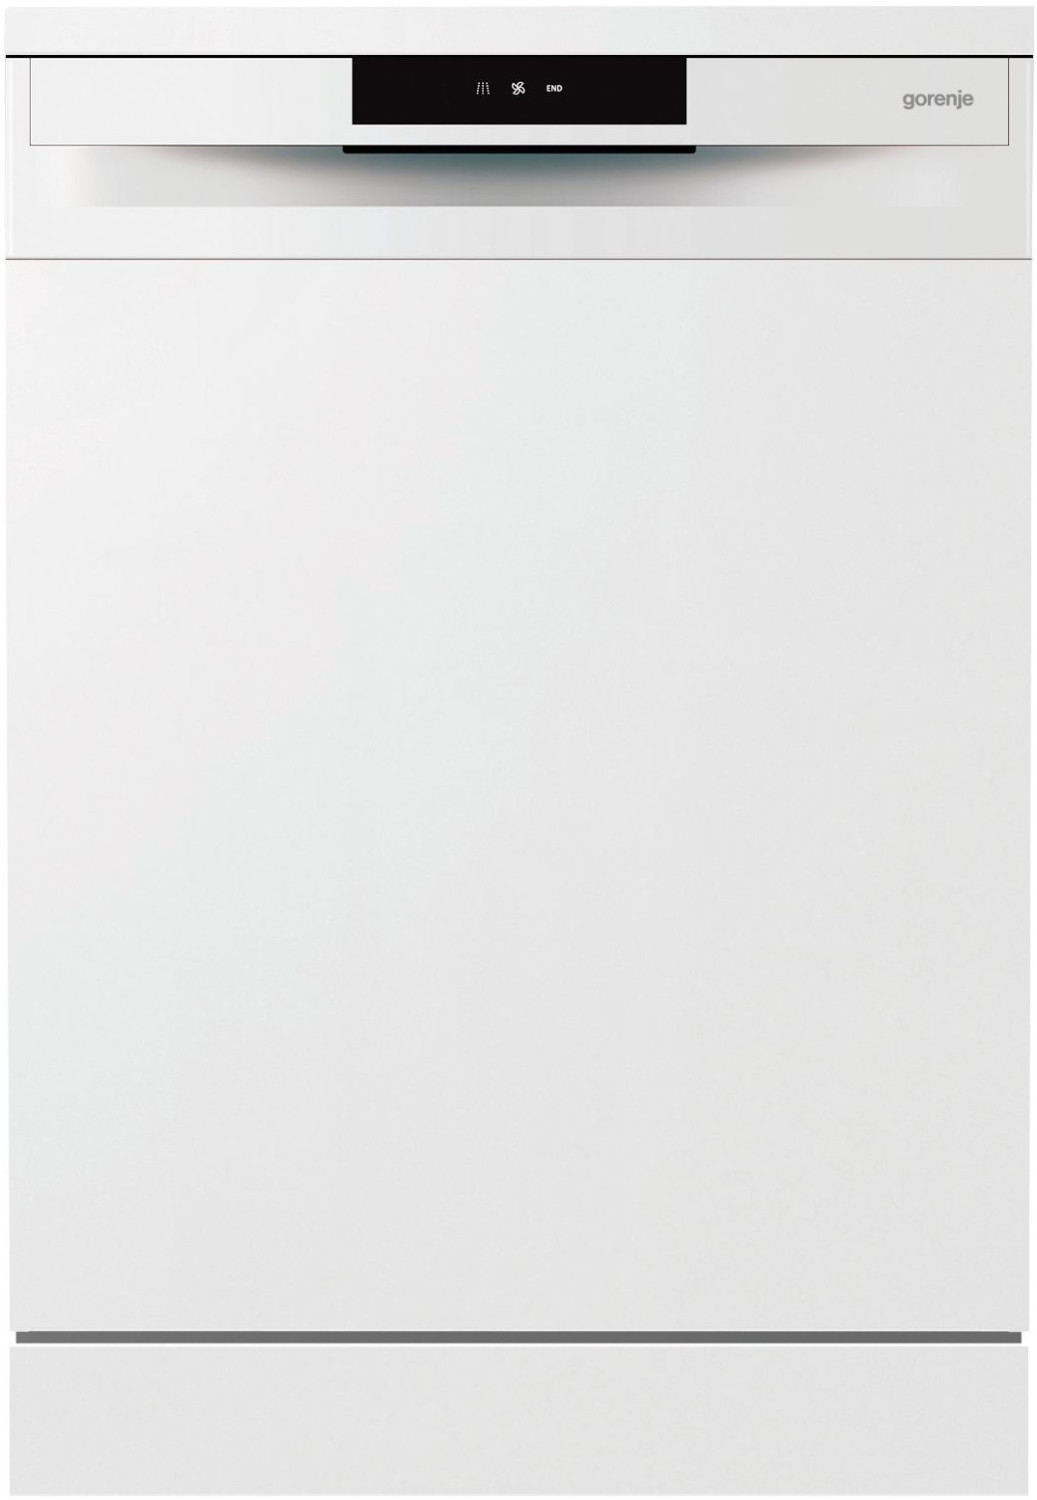 Image of Gorenje GS62010W